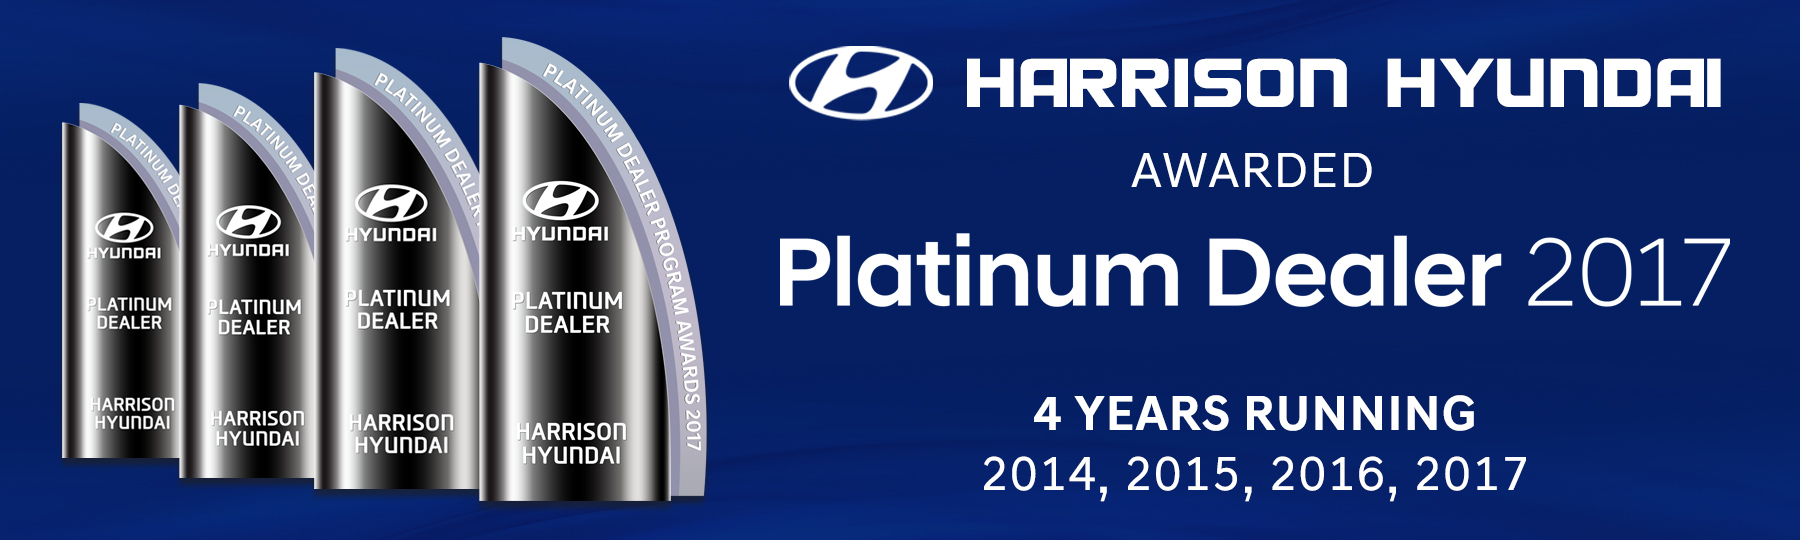 Harrison Hyundai Platinum Dealer